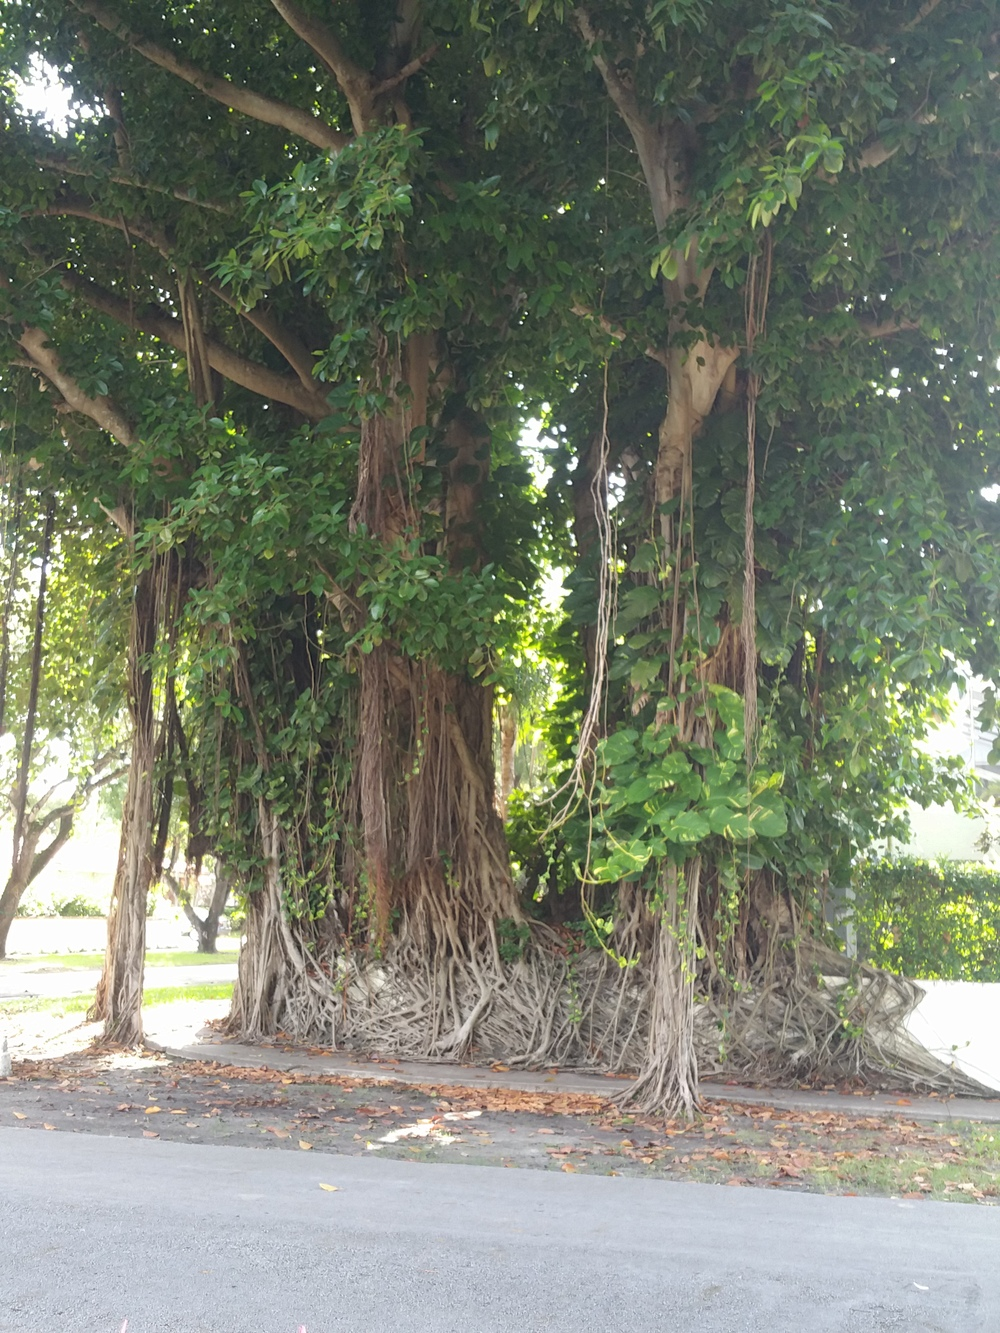 These amazing trees in Miami blow my mind more every time I see them.